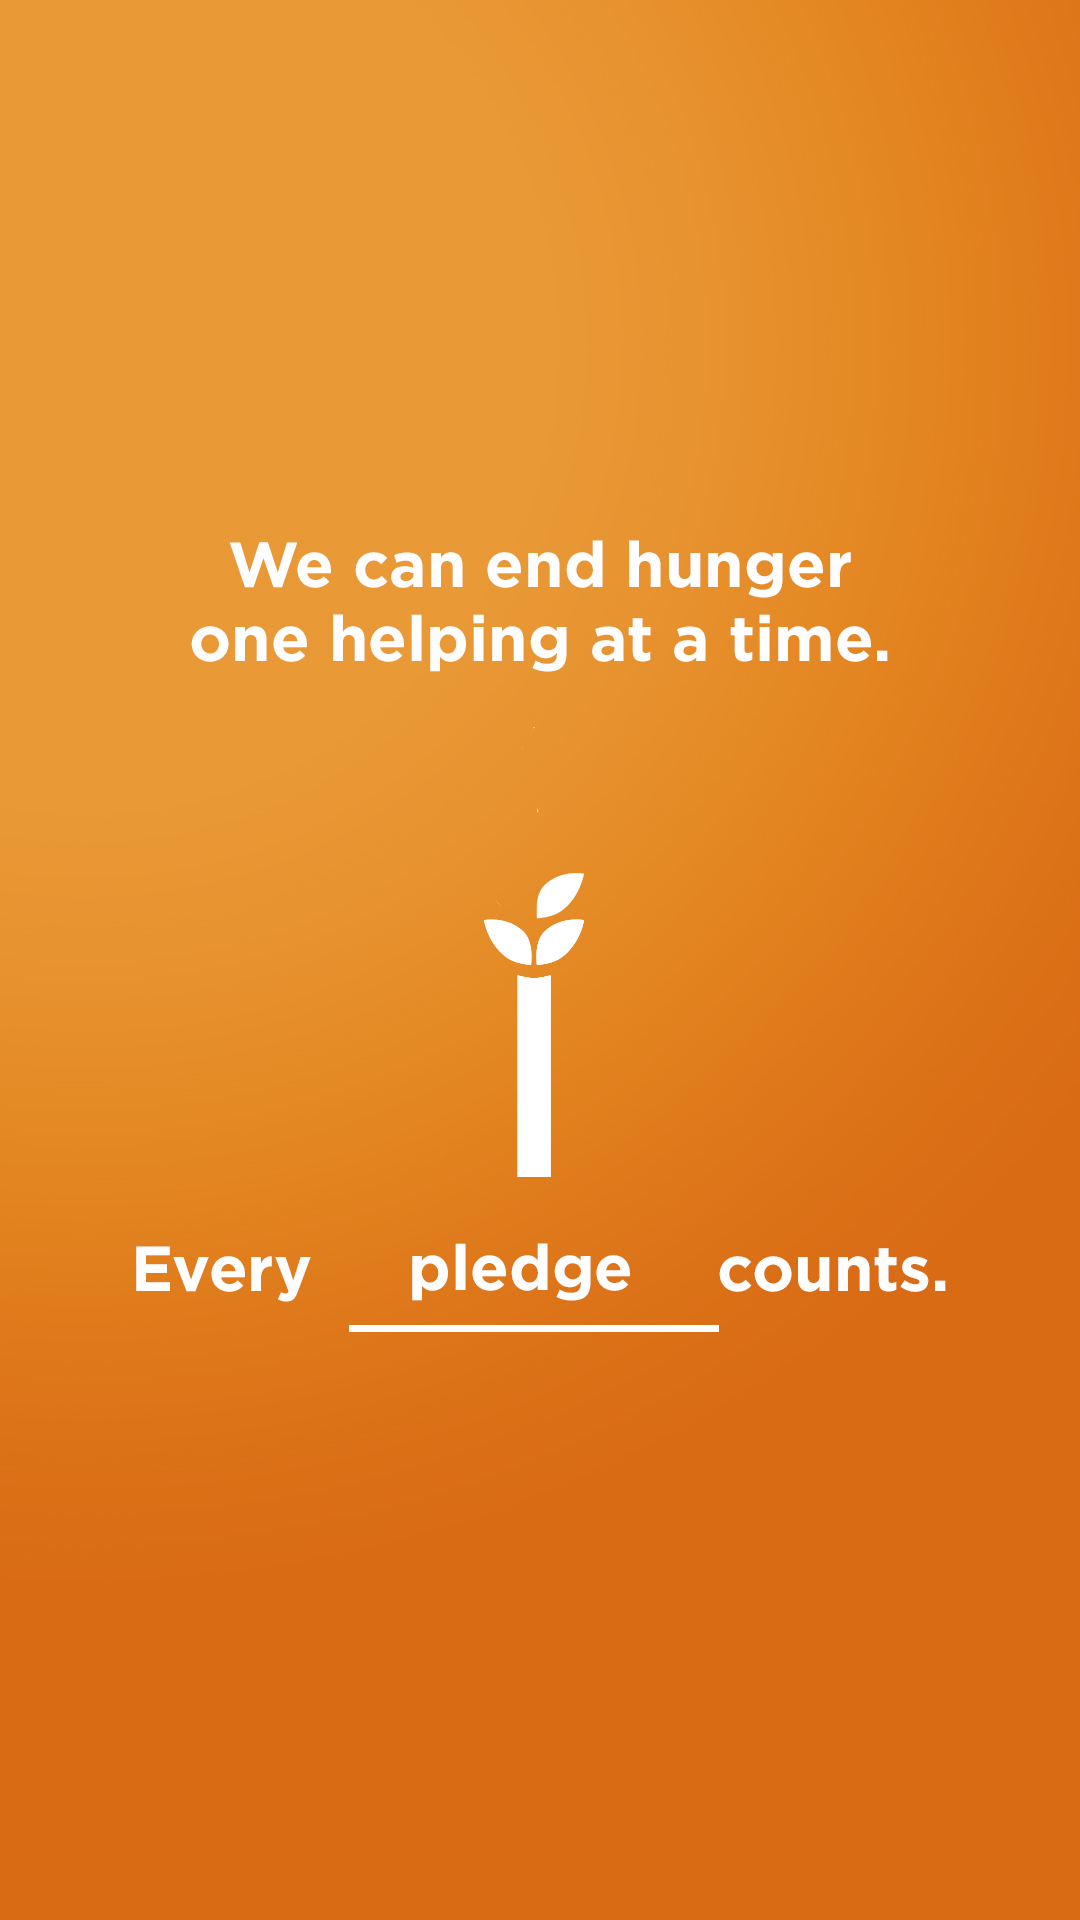 We can end hunger - Pledge